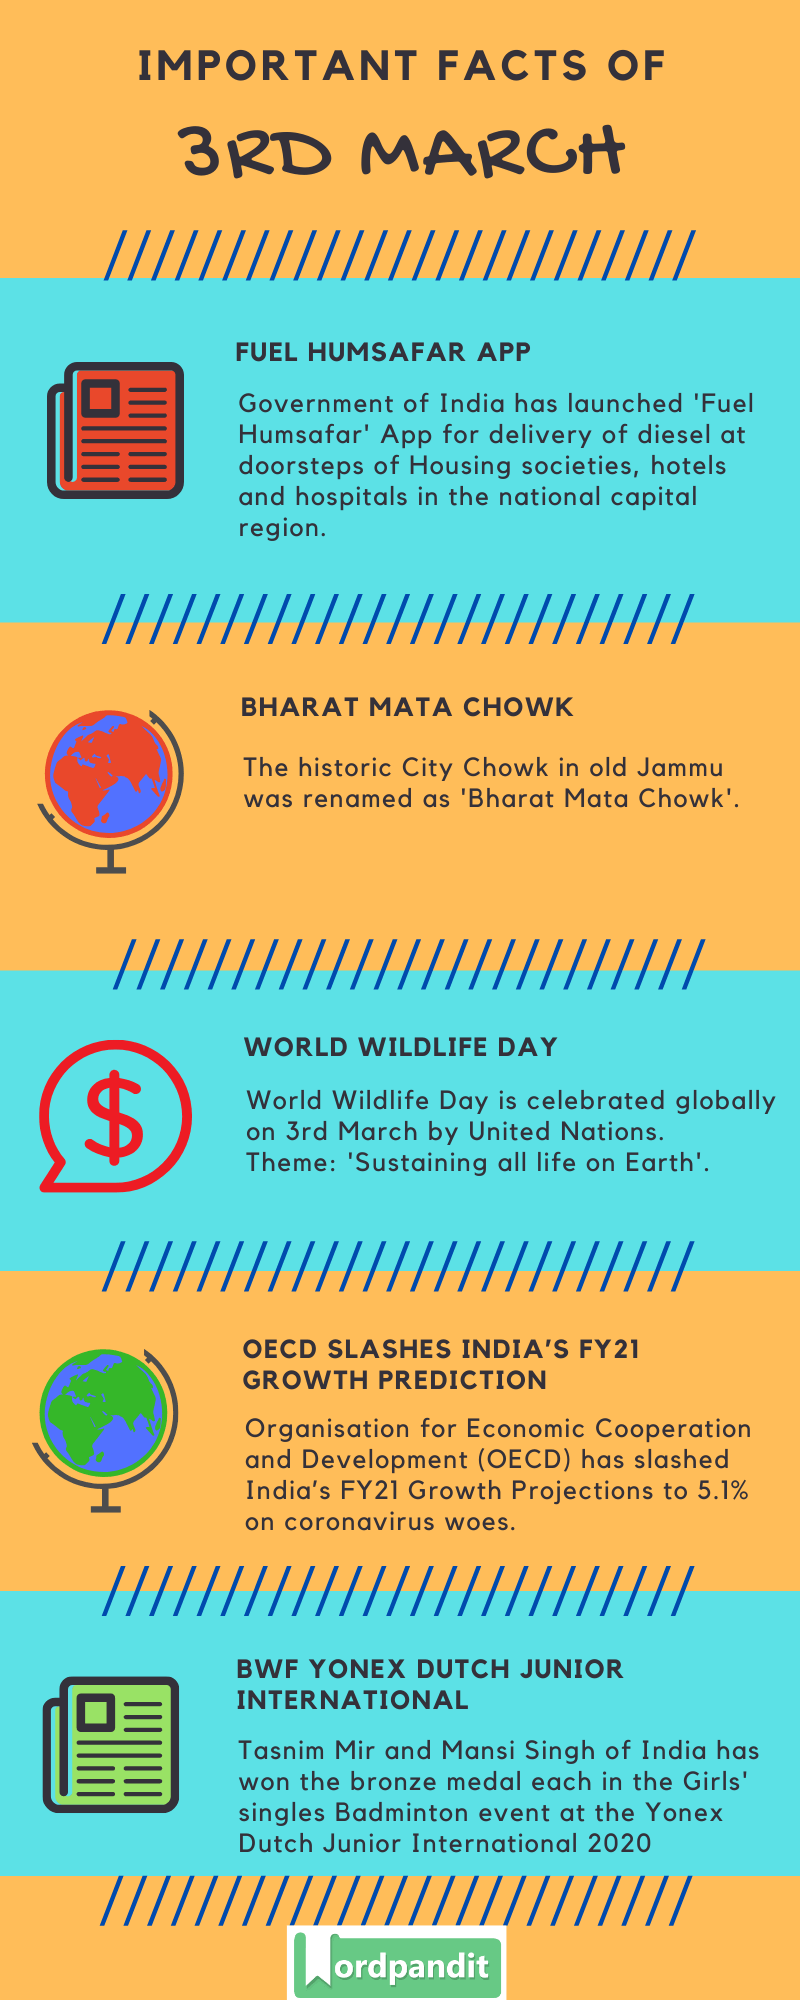 Daily Current Affairs 3 March 2020 Current Affairs Quiz 3 March 2020 Current Affairs Infographic